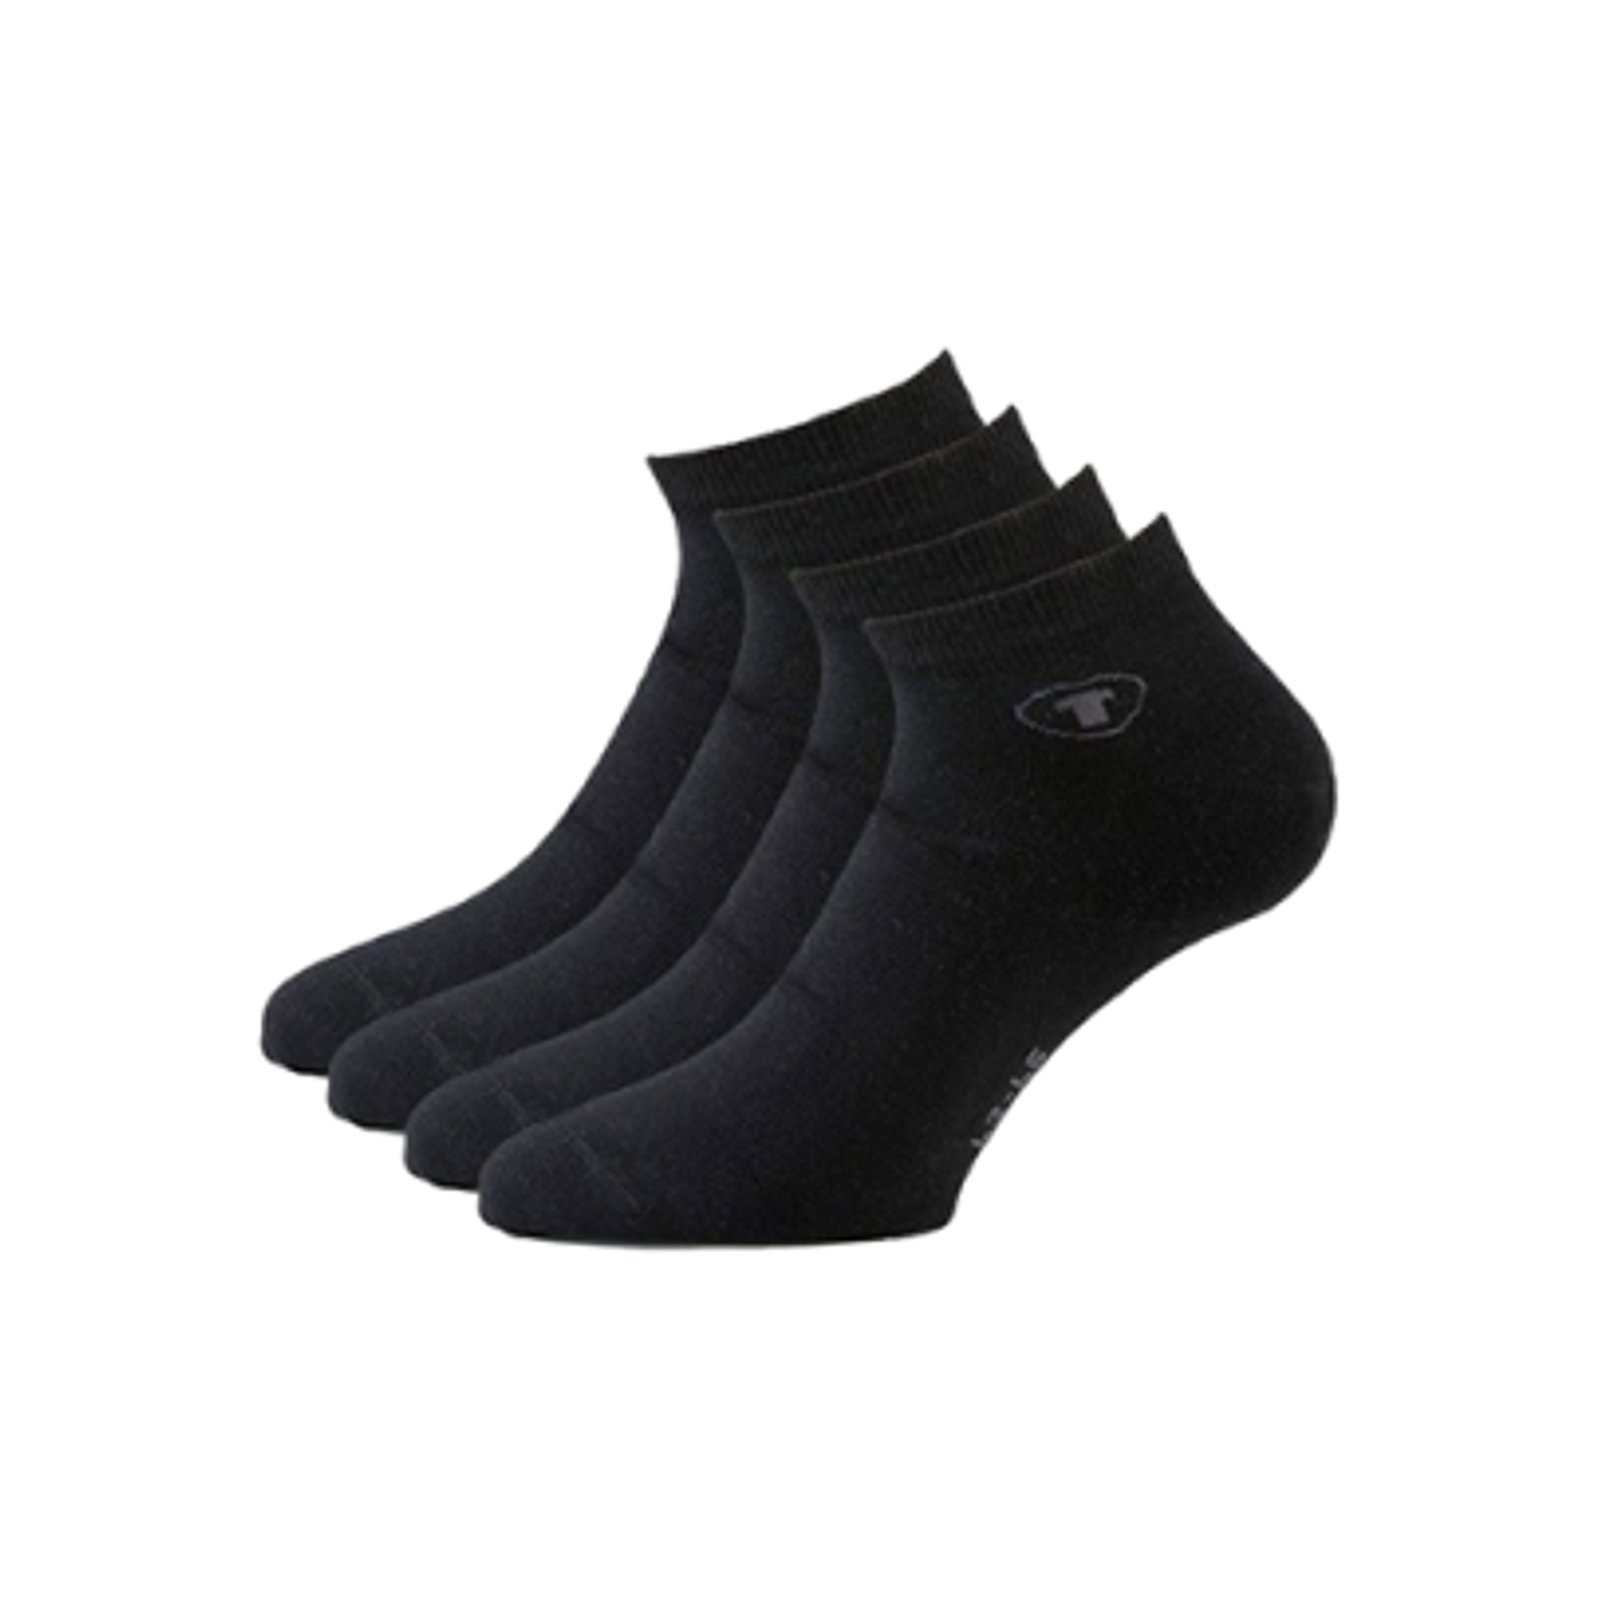 Tom Tailor Sneakersocken im 4er Pack black 39-42